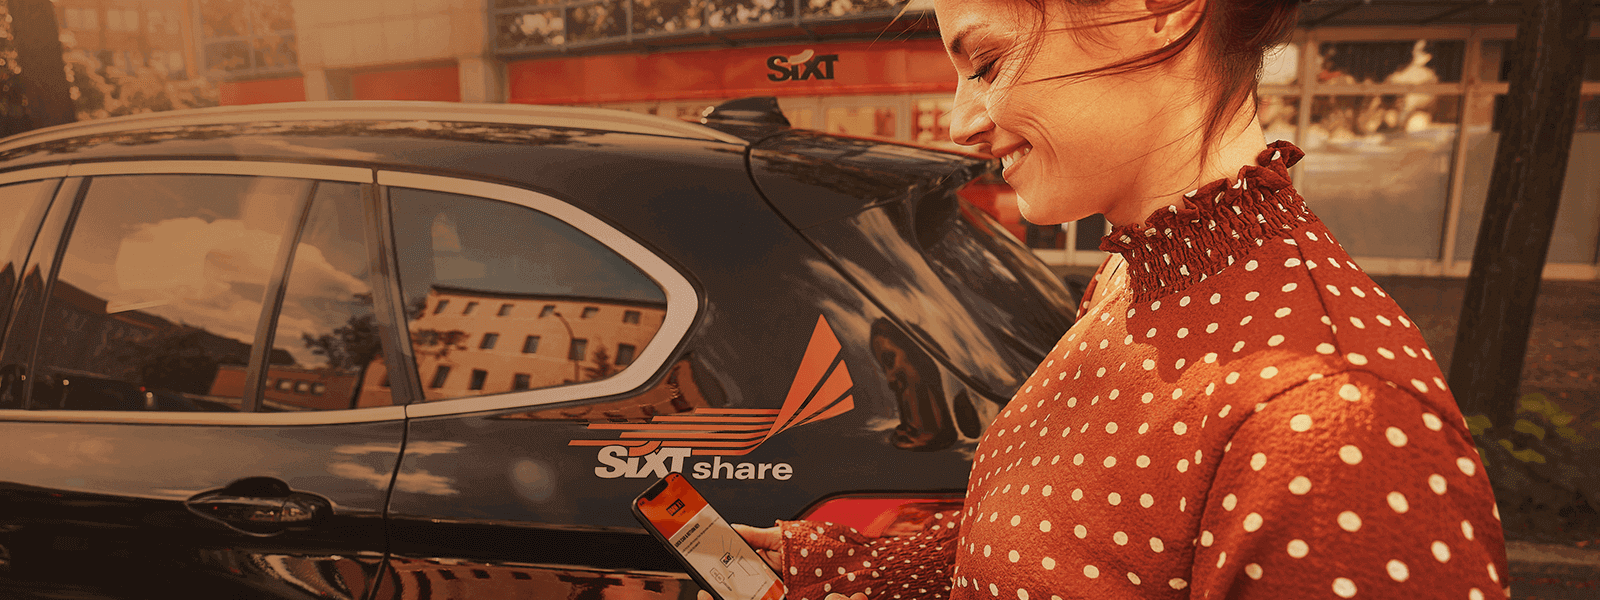 sixt share carsharing in guenstig